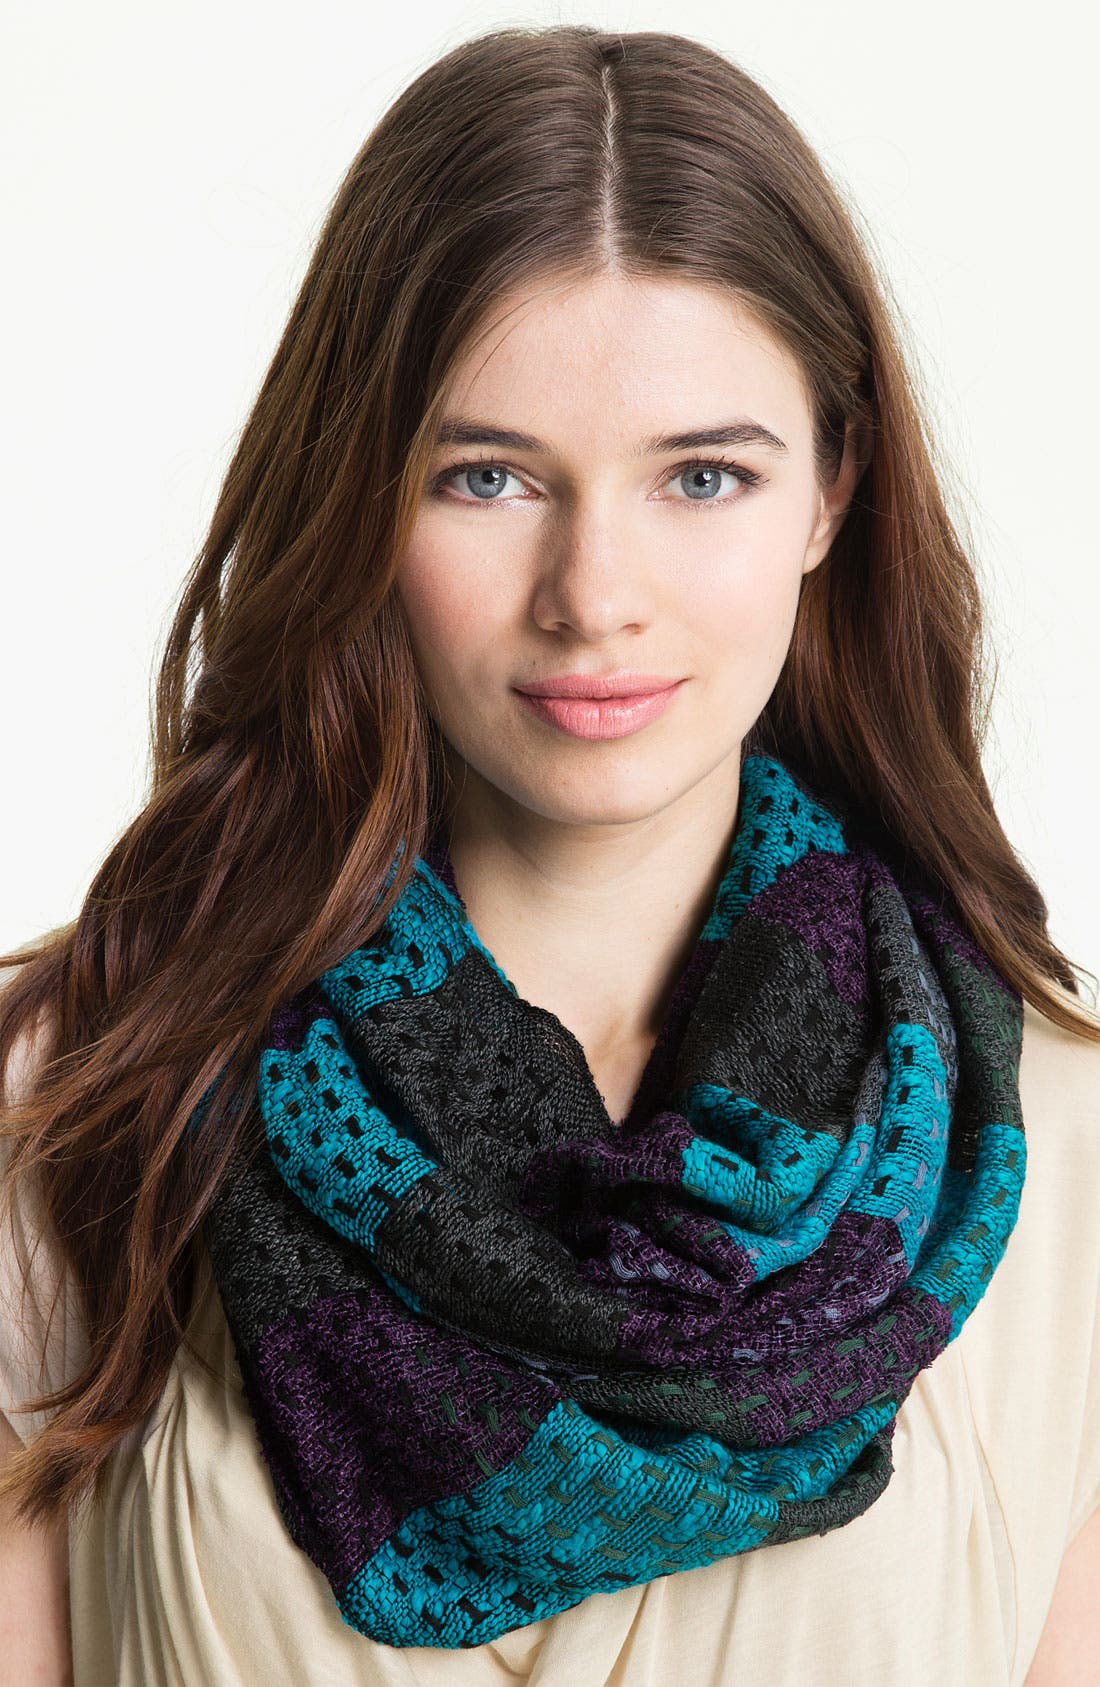 Alternate Image 1 Selected - Brazen Checkered Stitched Yarn Infinity Scarf